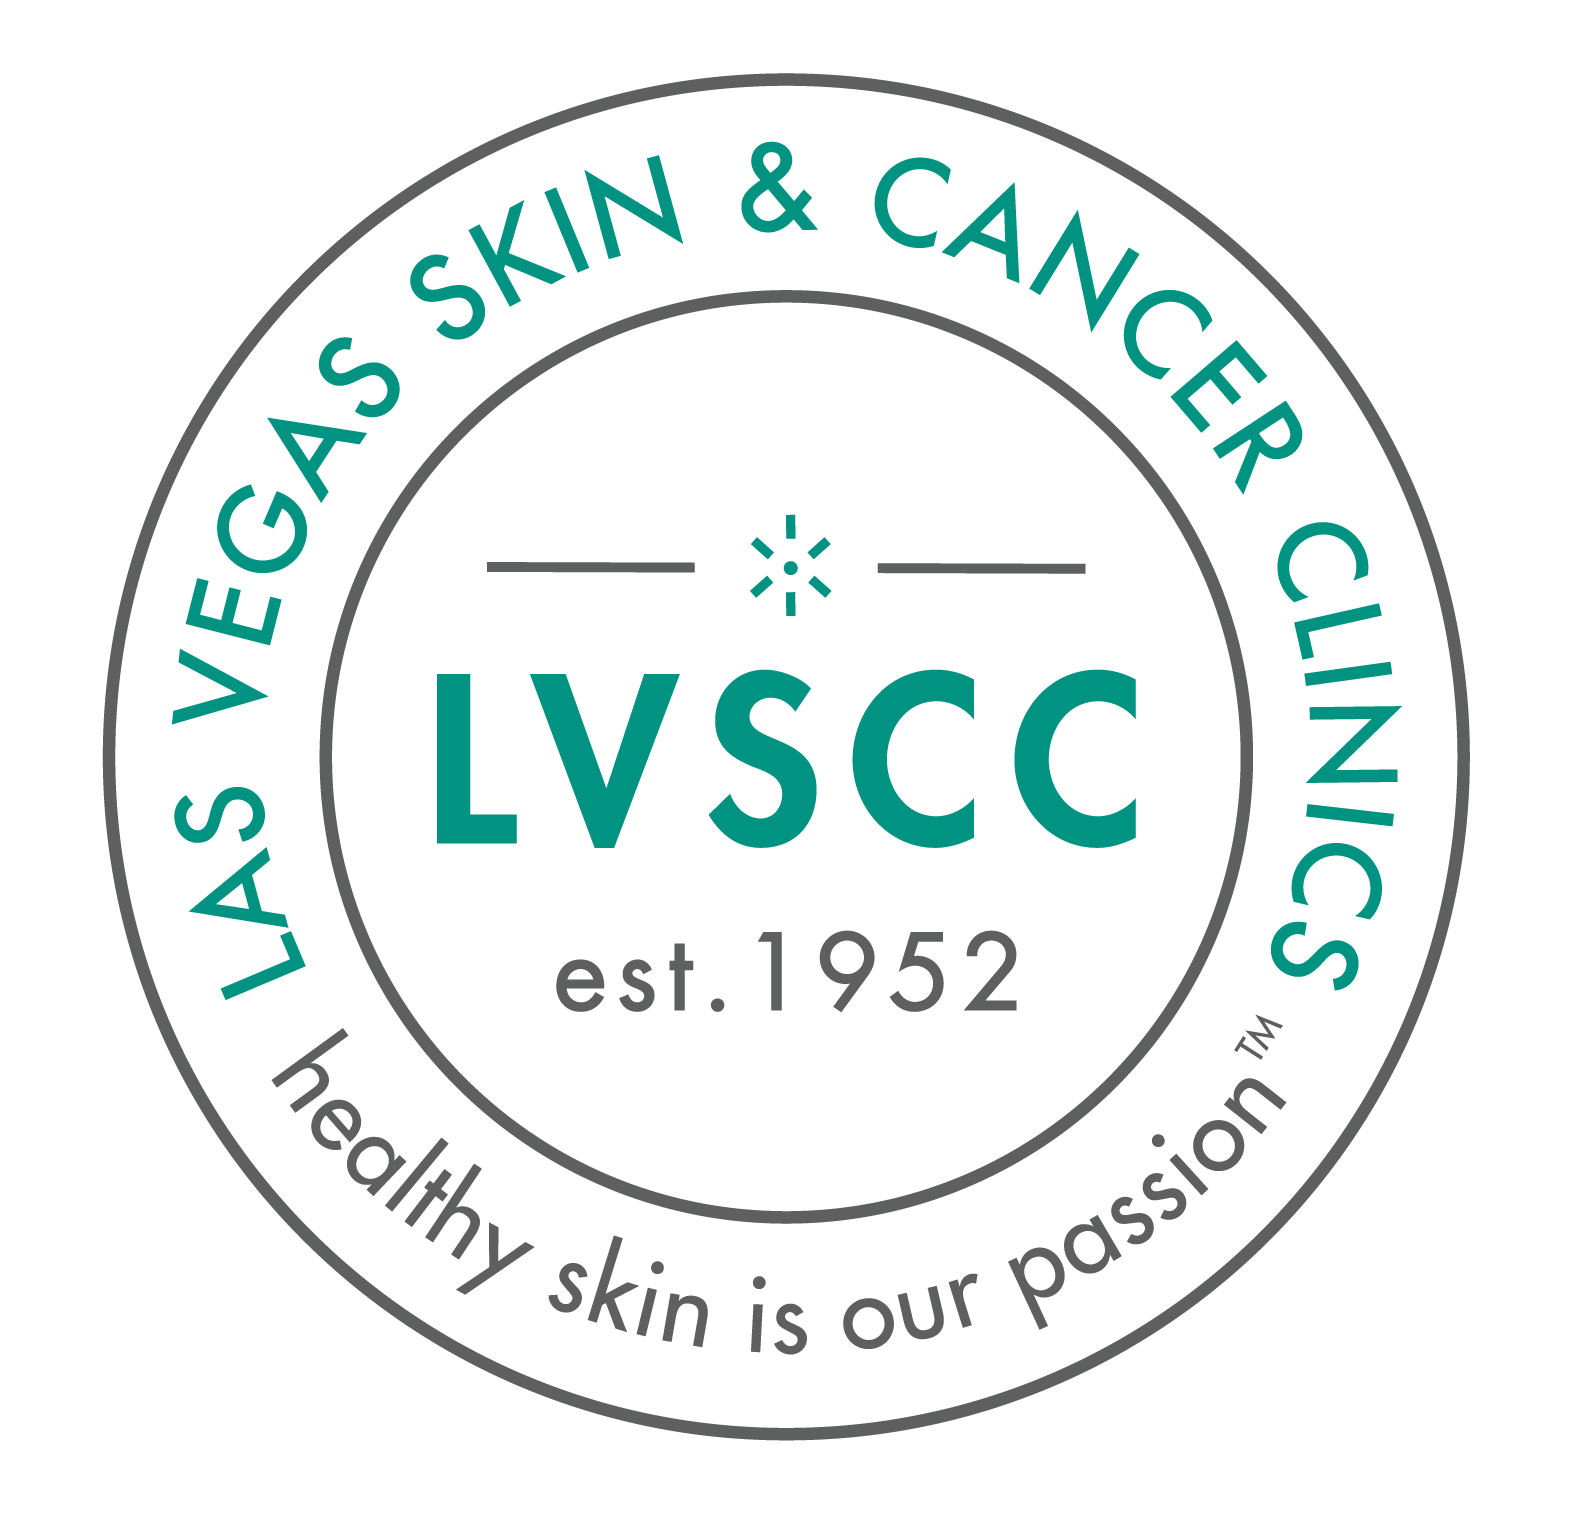 Las Vegas Skin & Cancer Warm Springs, a Top Las Vegas Dermatologist in NV Announces Expanded Hours